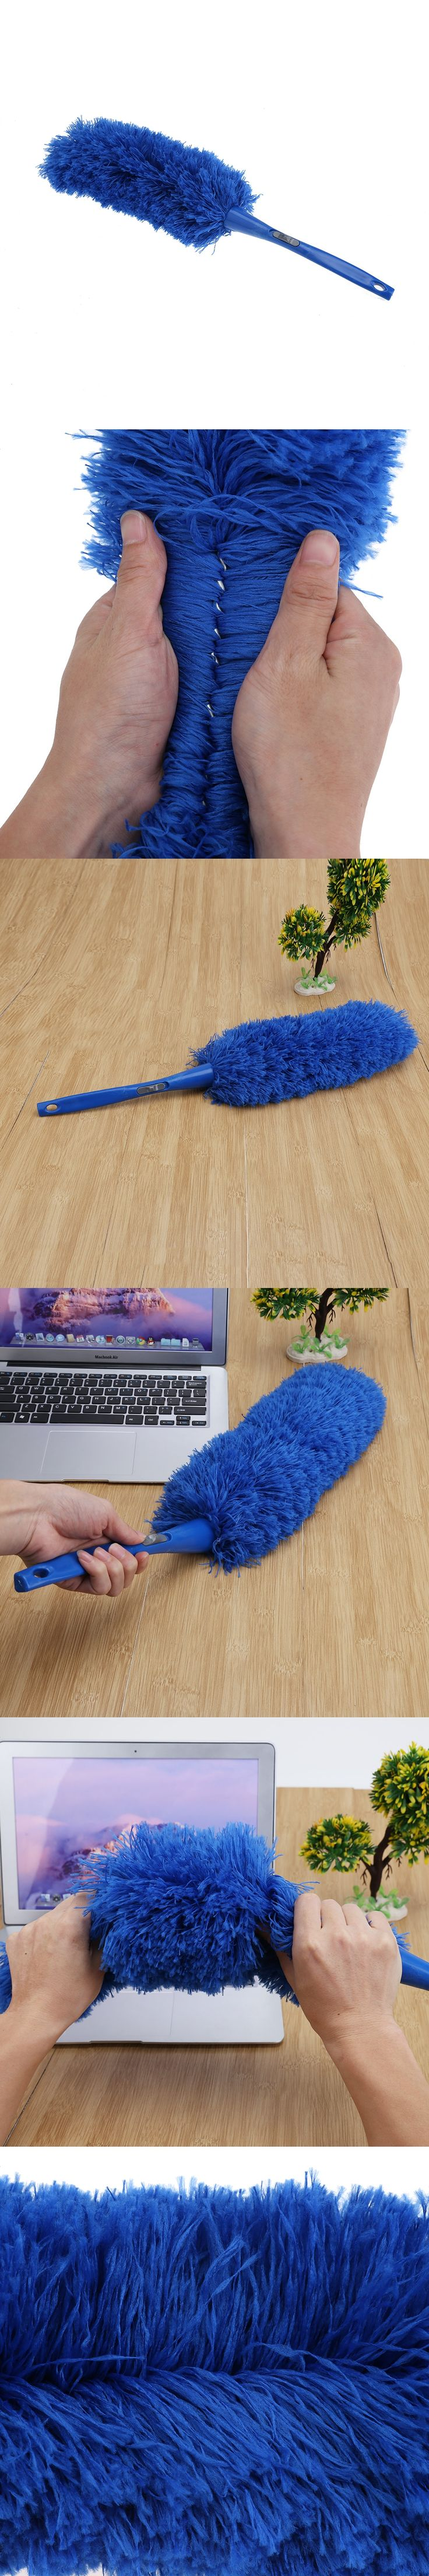 Soft Microfiber Cleaning Duster Dust Cleaner Handle Feather Static Anti Magic Household Cleaning Tools